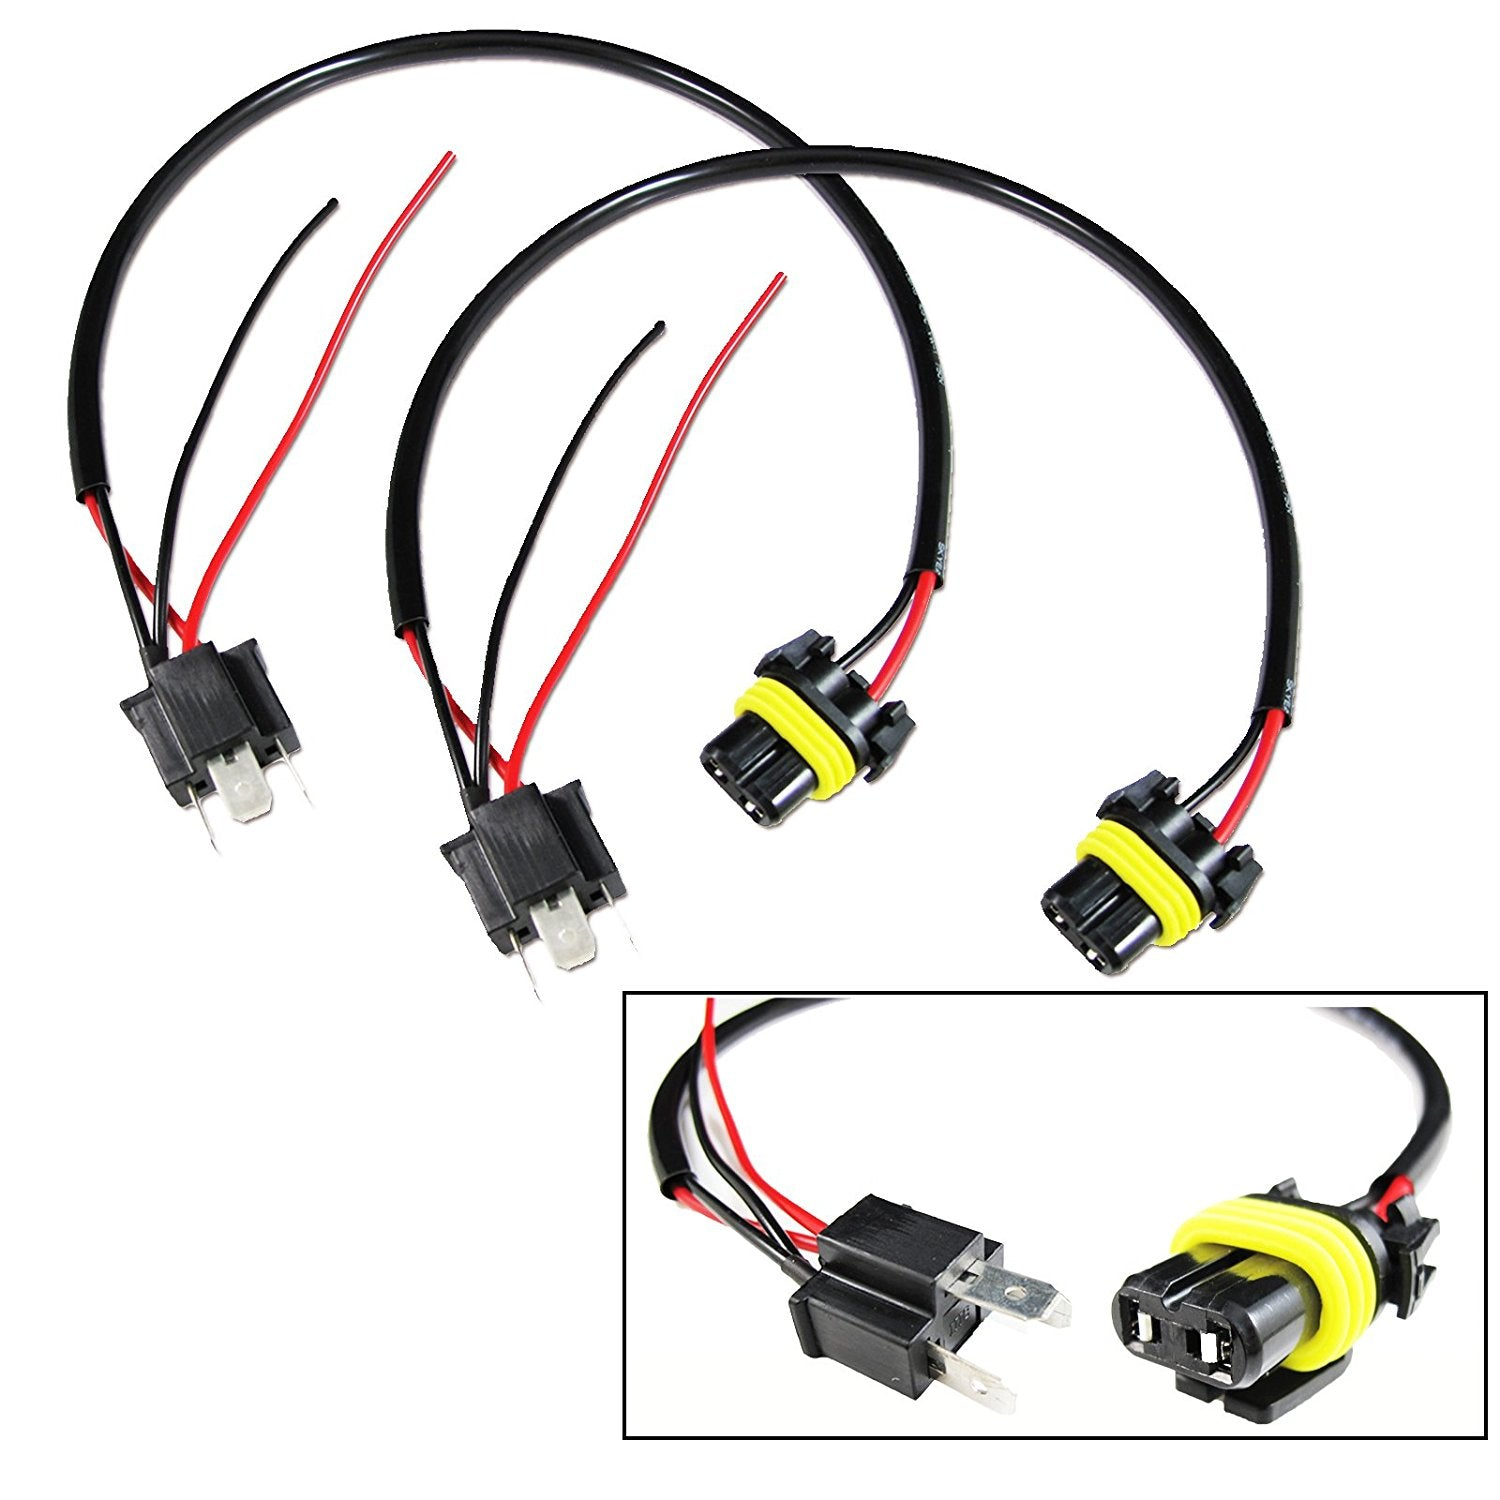 9006 to h4 conversion wires adapters headlight retrofit or hid kit Automotive Electrical Wire 9006 to h4 conversion wires adapters headlight retrofit or hid kit installation